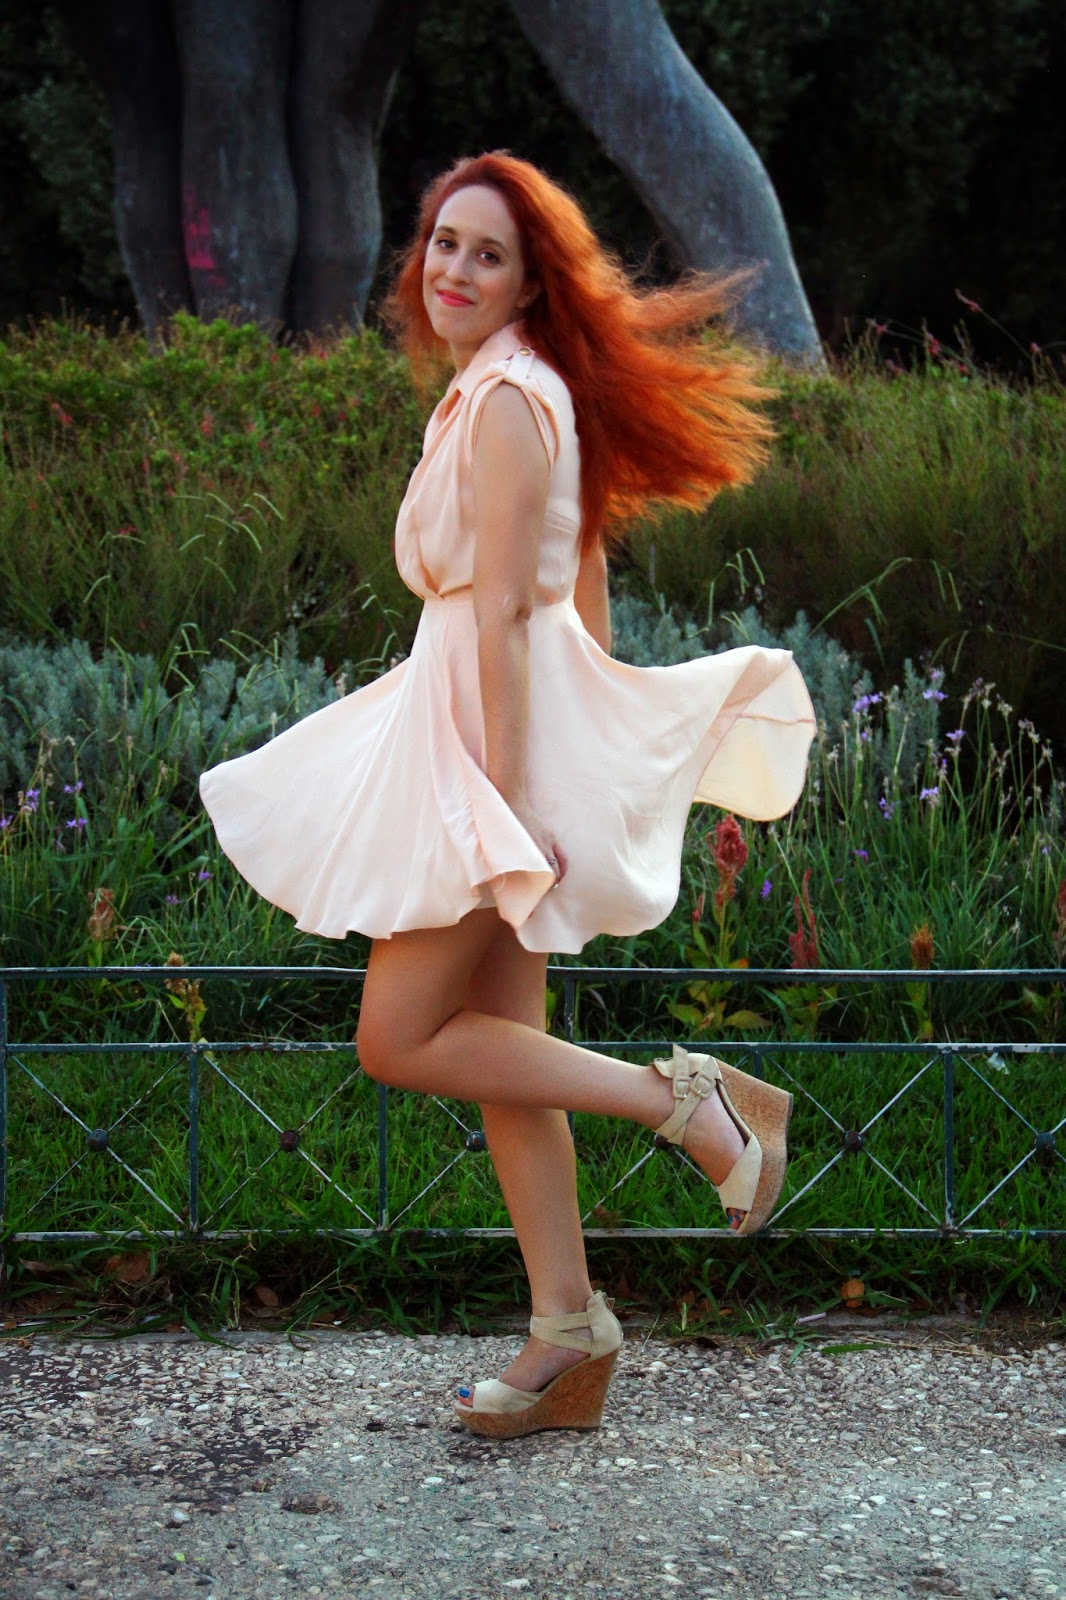 Anna ,Keni,redhead, spotlights on the redhead,fashion,model,blogger, OASAP,  review, dress, high heels, sexy, pink, summer, autumn, fall